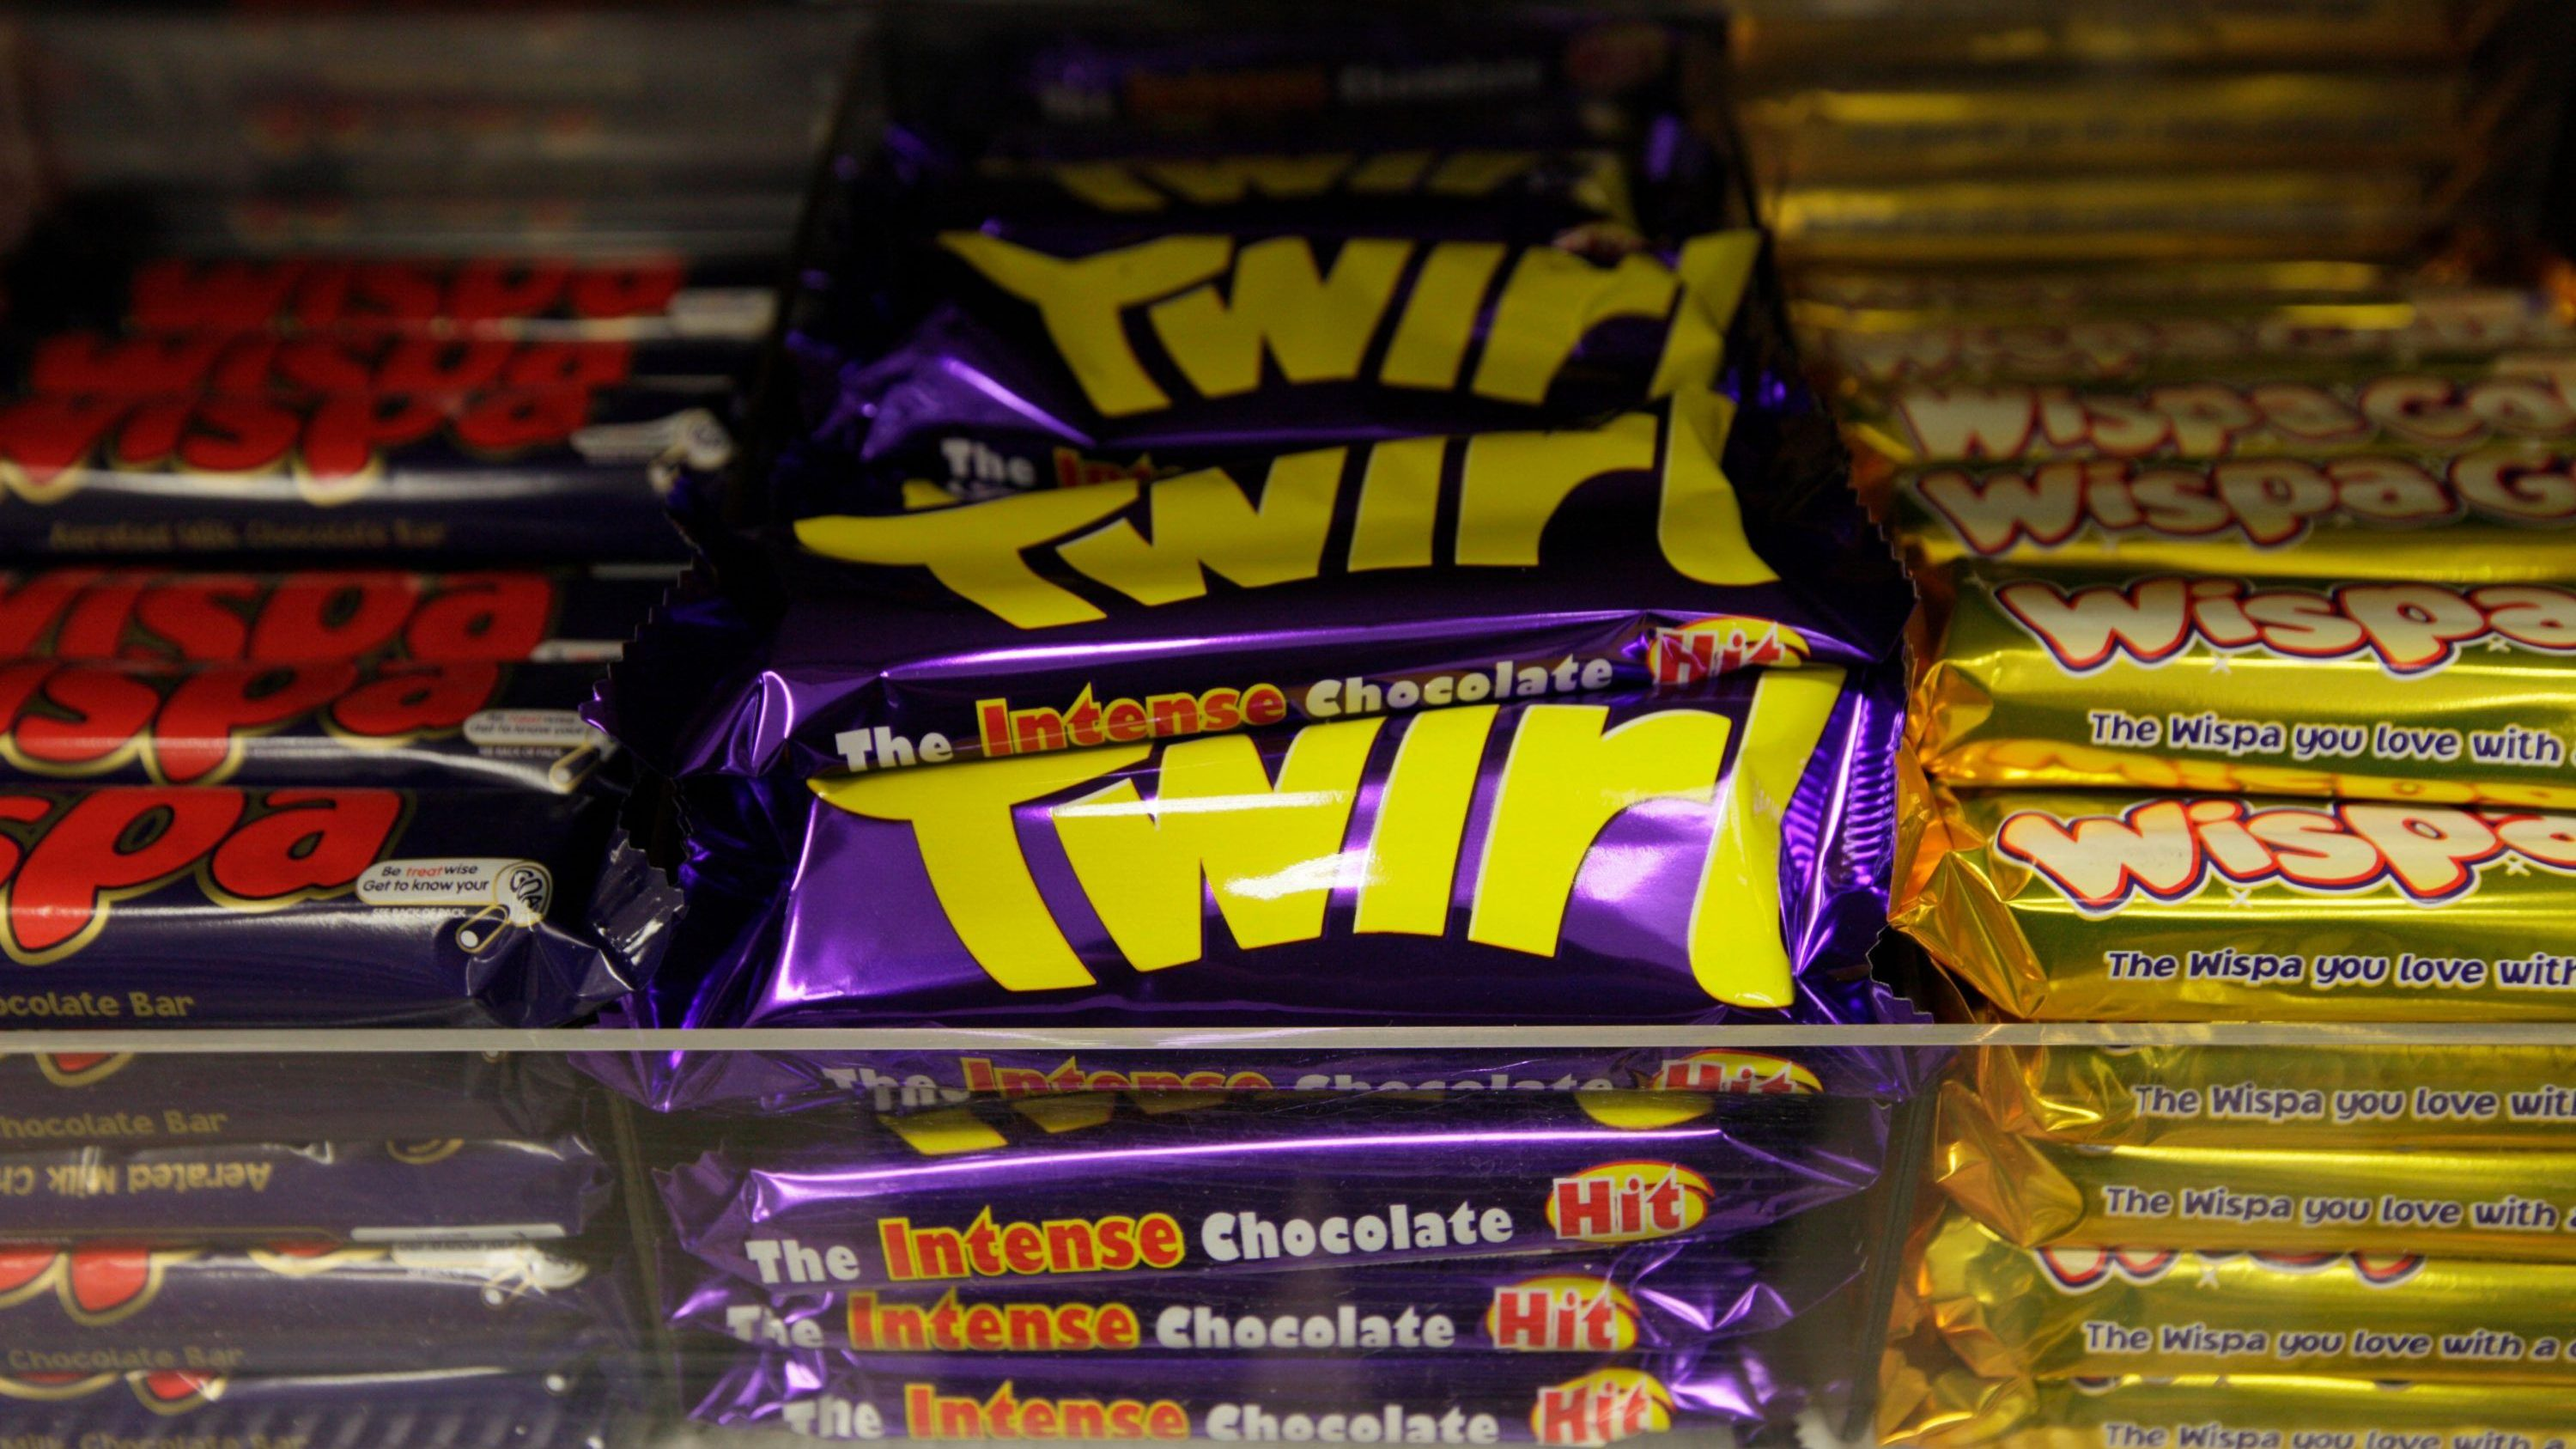 Cadbury chocolate bars are seen on a supermarket's shelves in central London, Monday Nov. 9, 2009.  Kraft Foods Inc. has launched a 9.8 billion pound (US$16.4 billion) hostile bid for Cadbury PLC _ refusing to sweeten a previous offer rejected by the British candy maker.